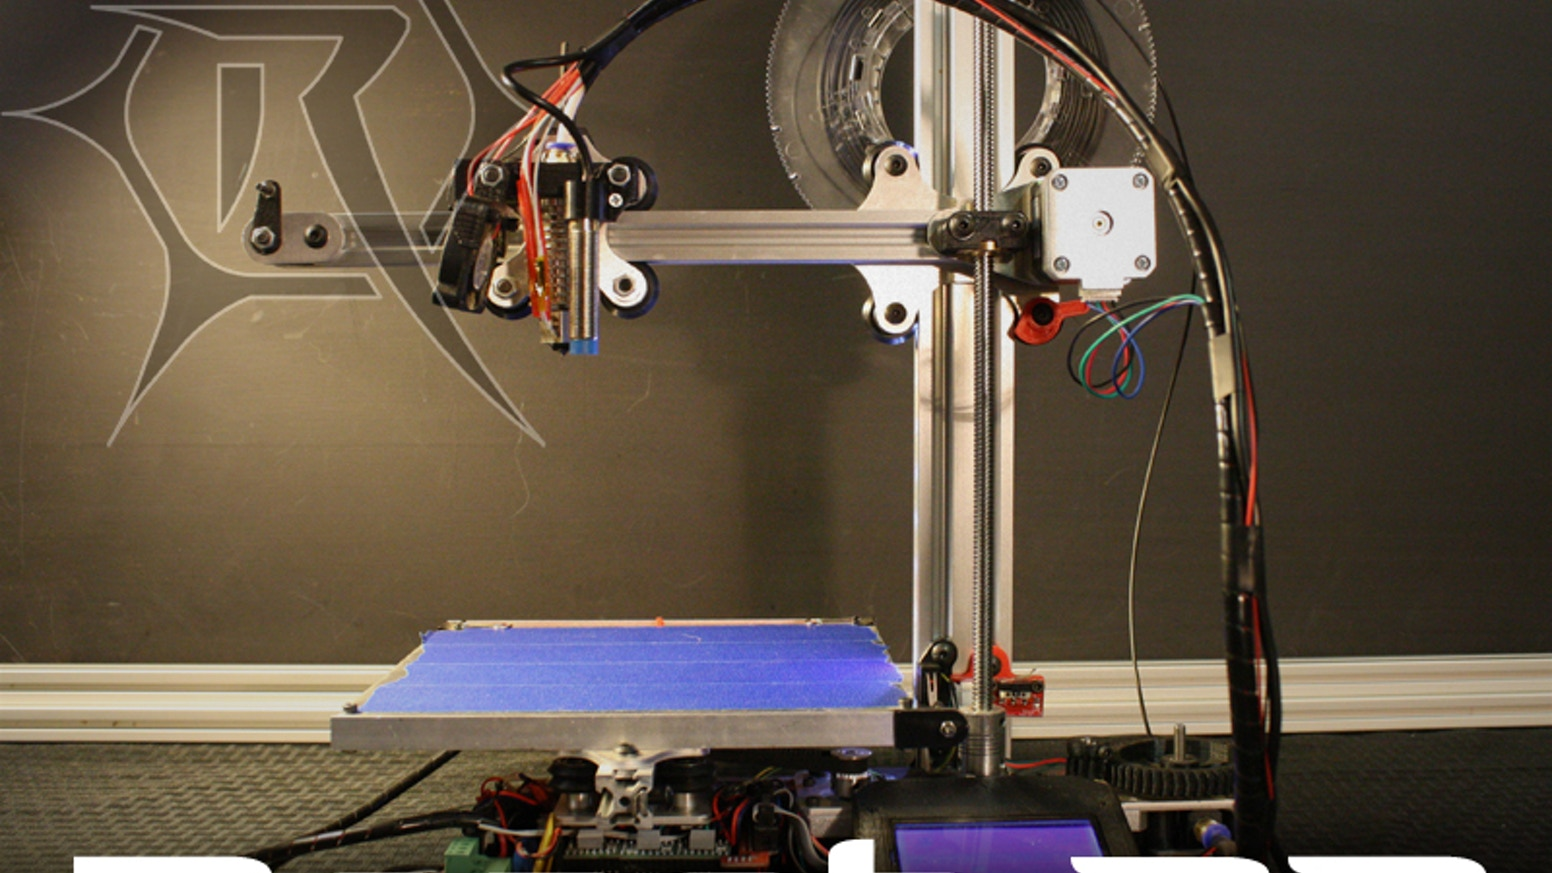 Reach 3D - An all-in-one 3D printer, easily modified for laser cutting, engraving, plotting and light milling.